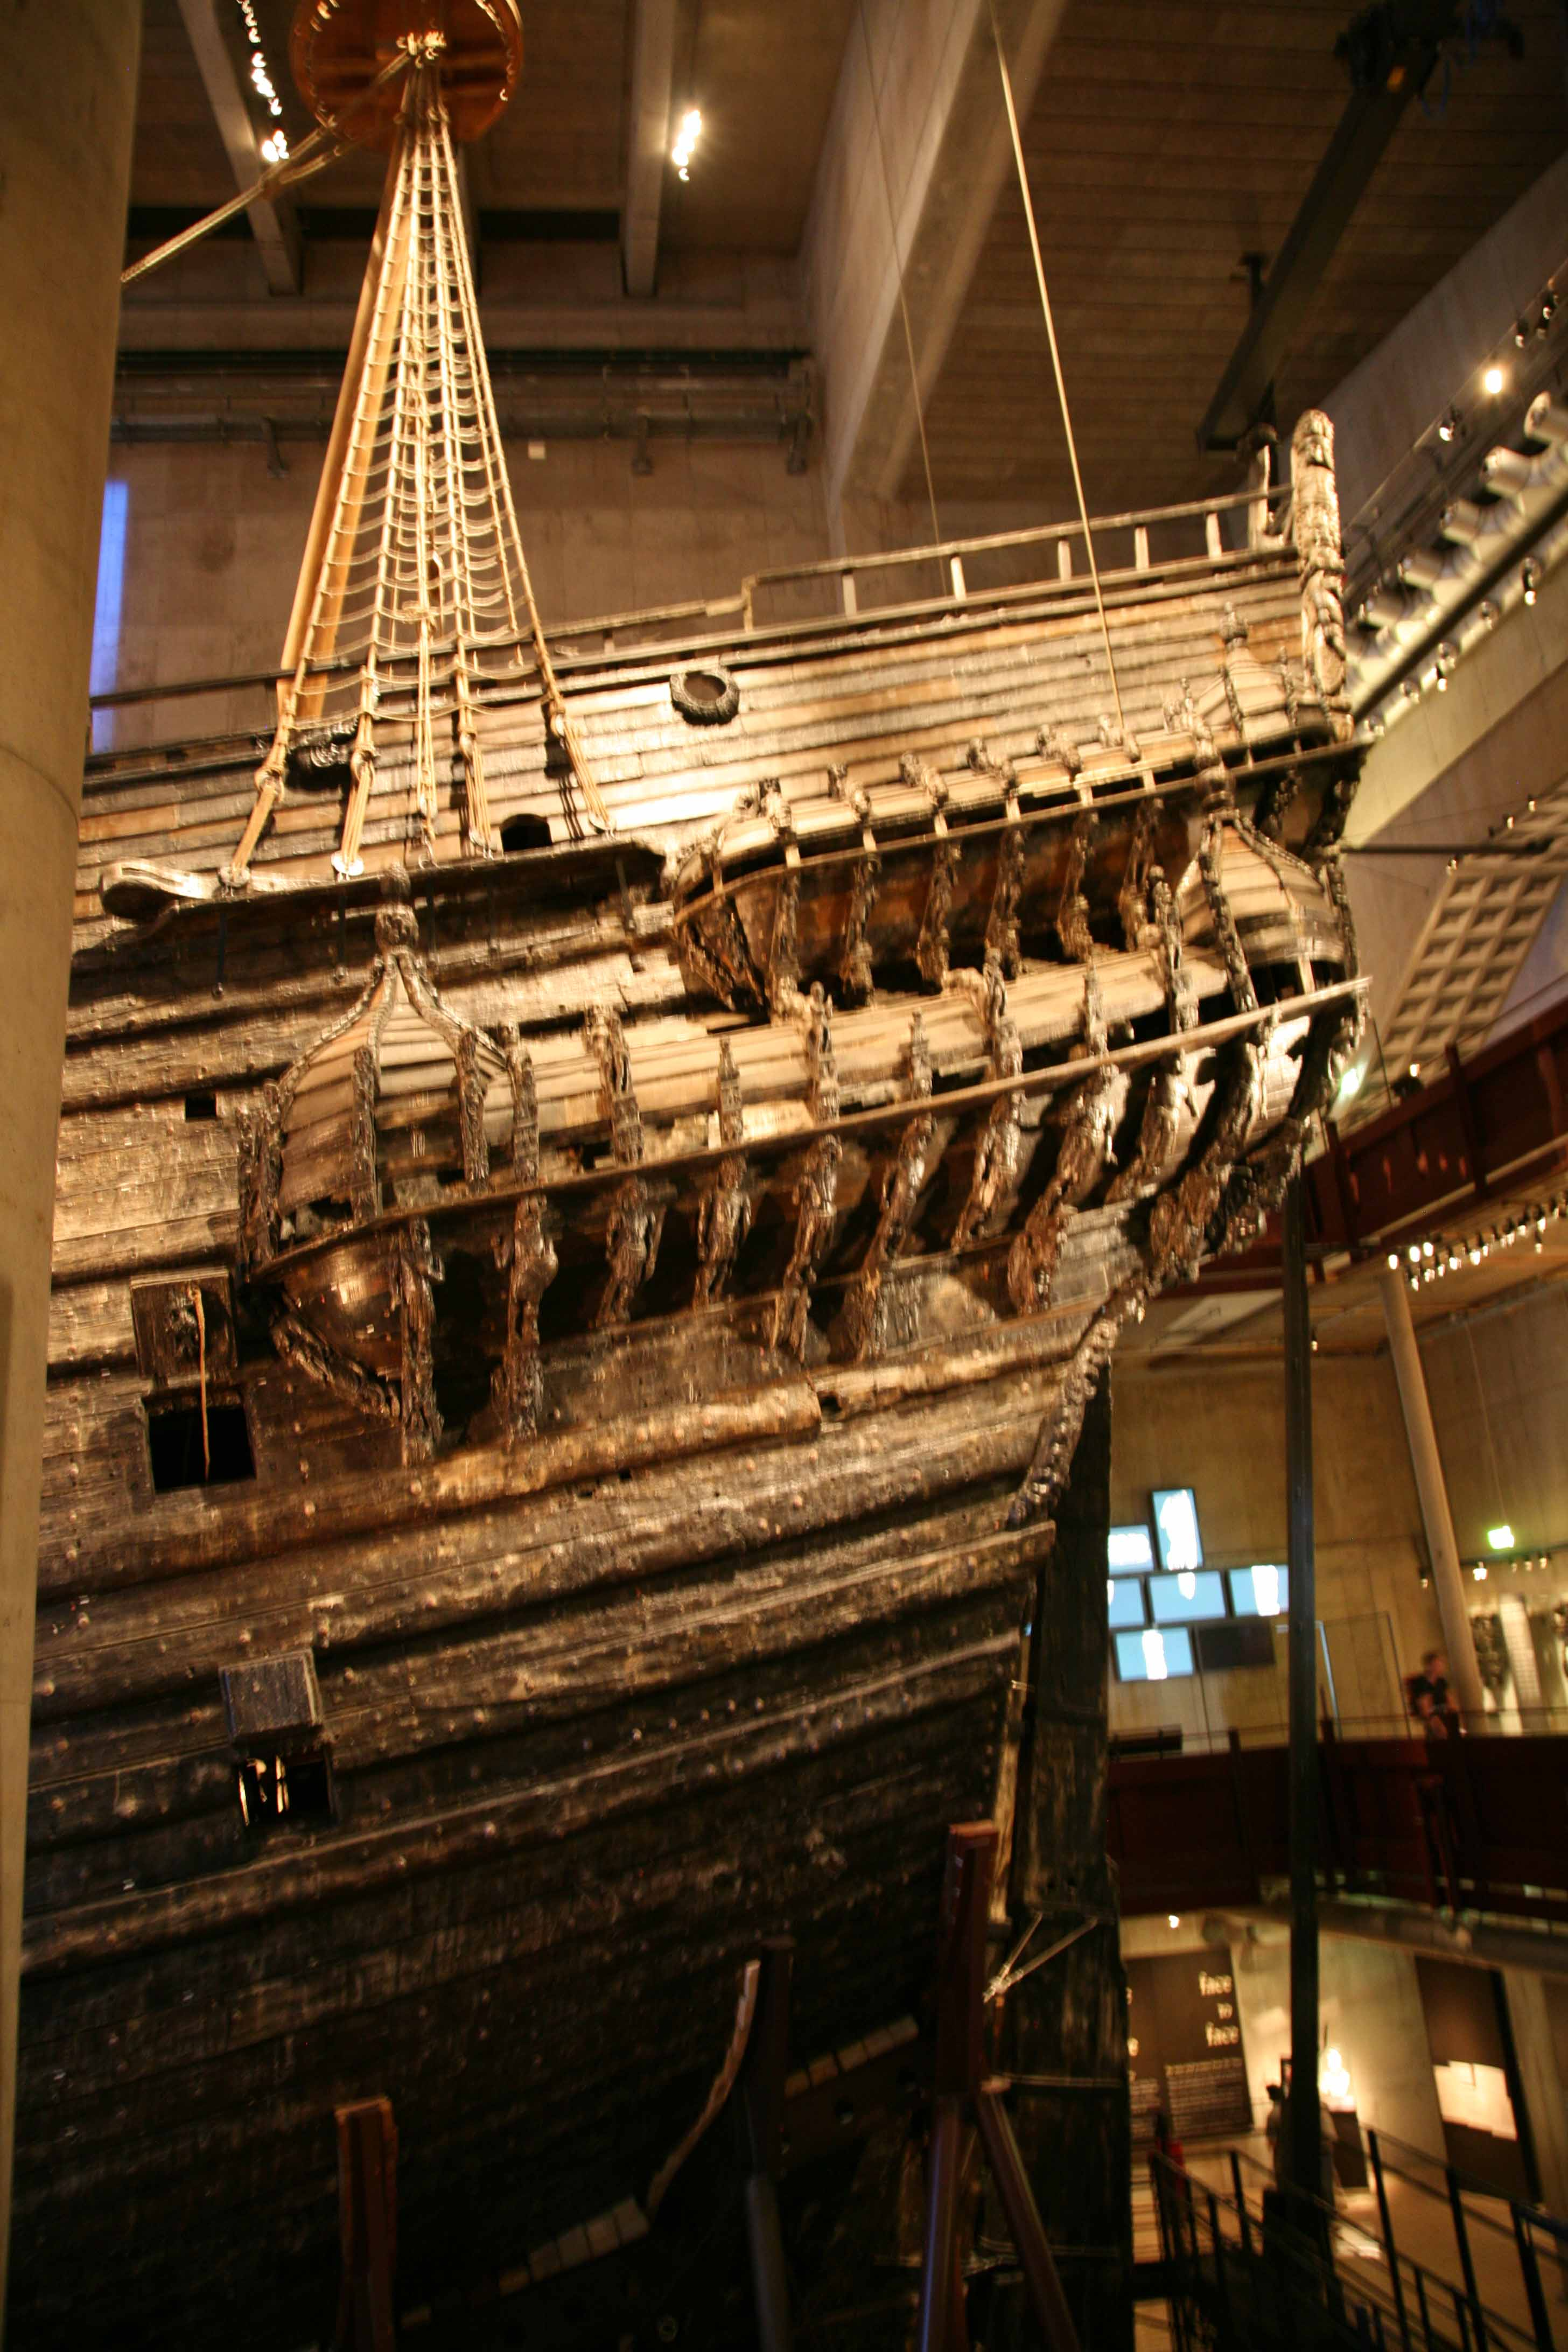 Photos of Vasa ship in the Vasa museum Stockholm